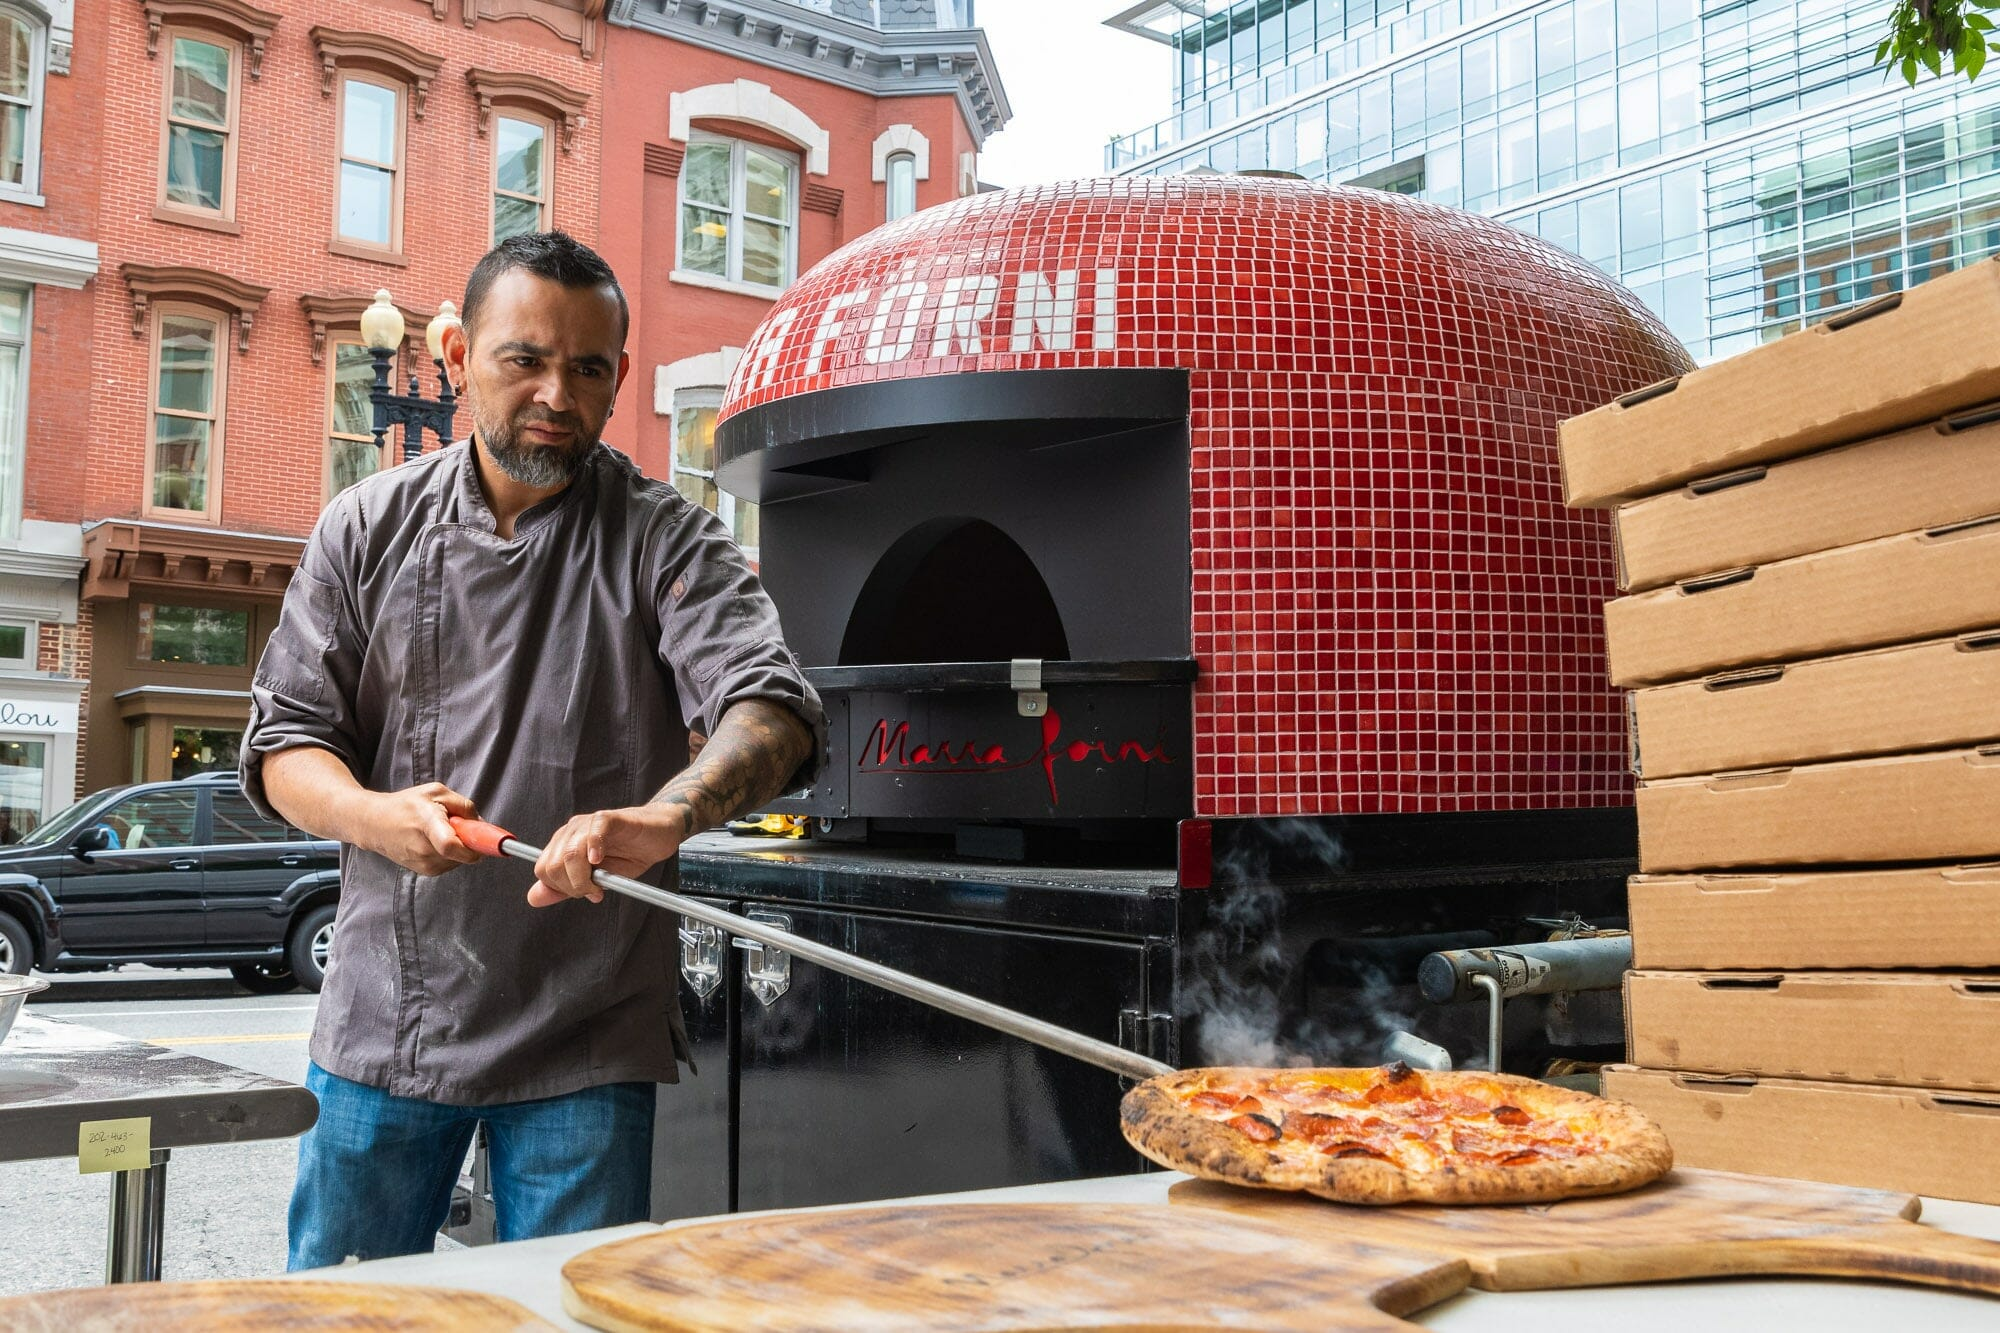 Marra Forni Catering in washington DC streets